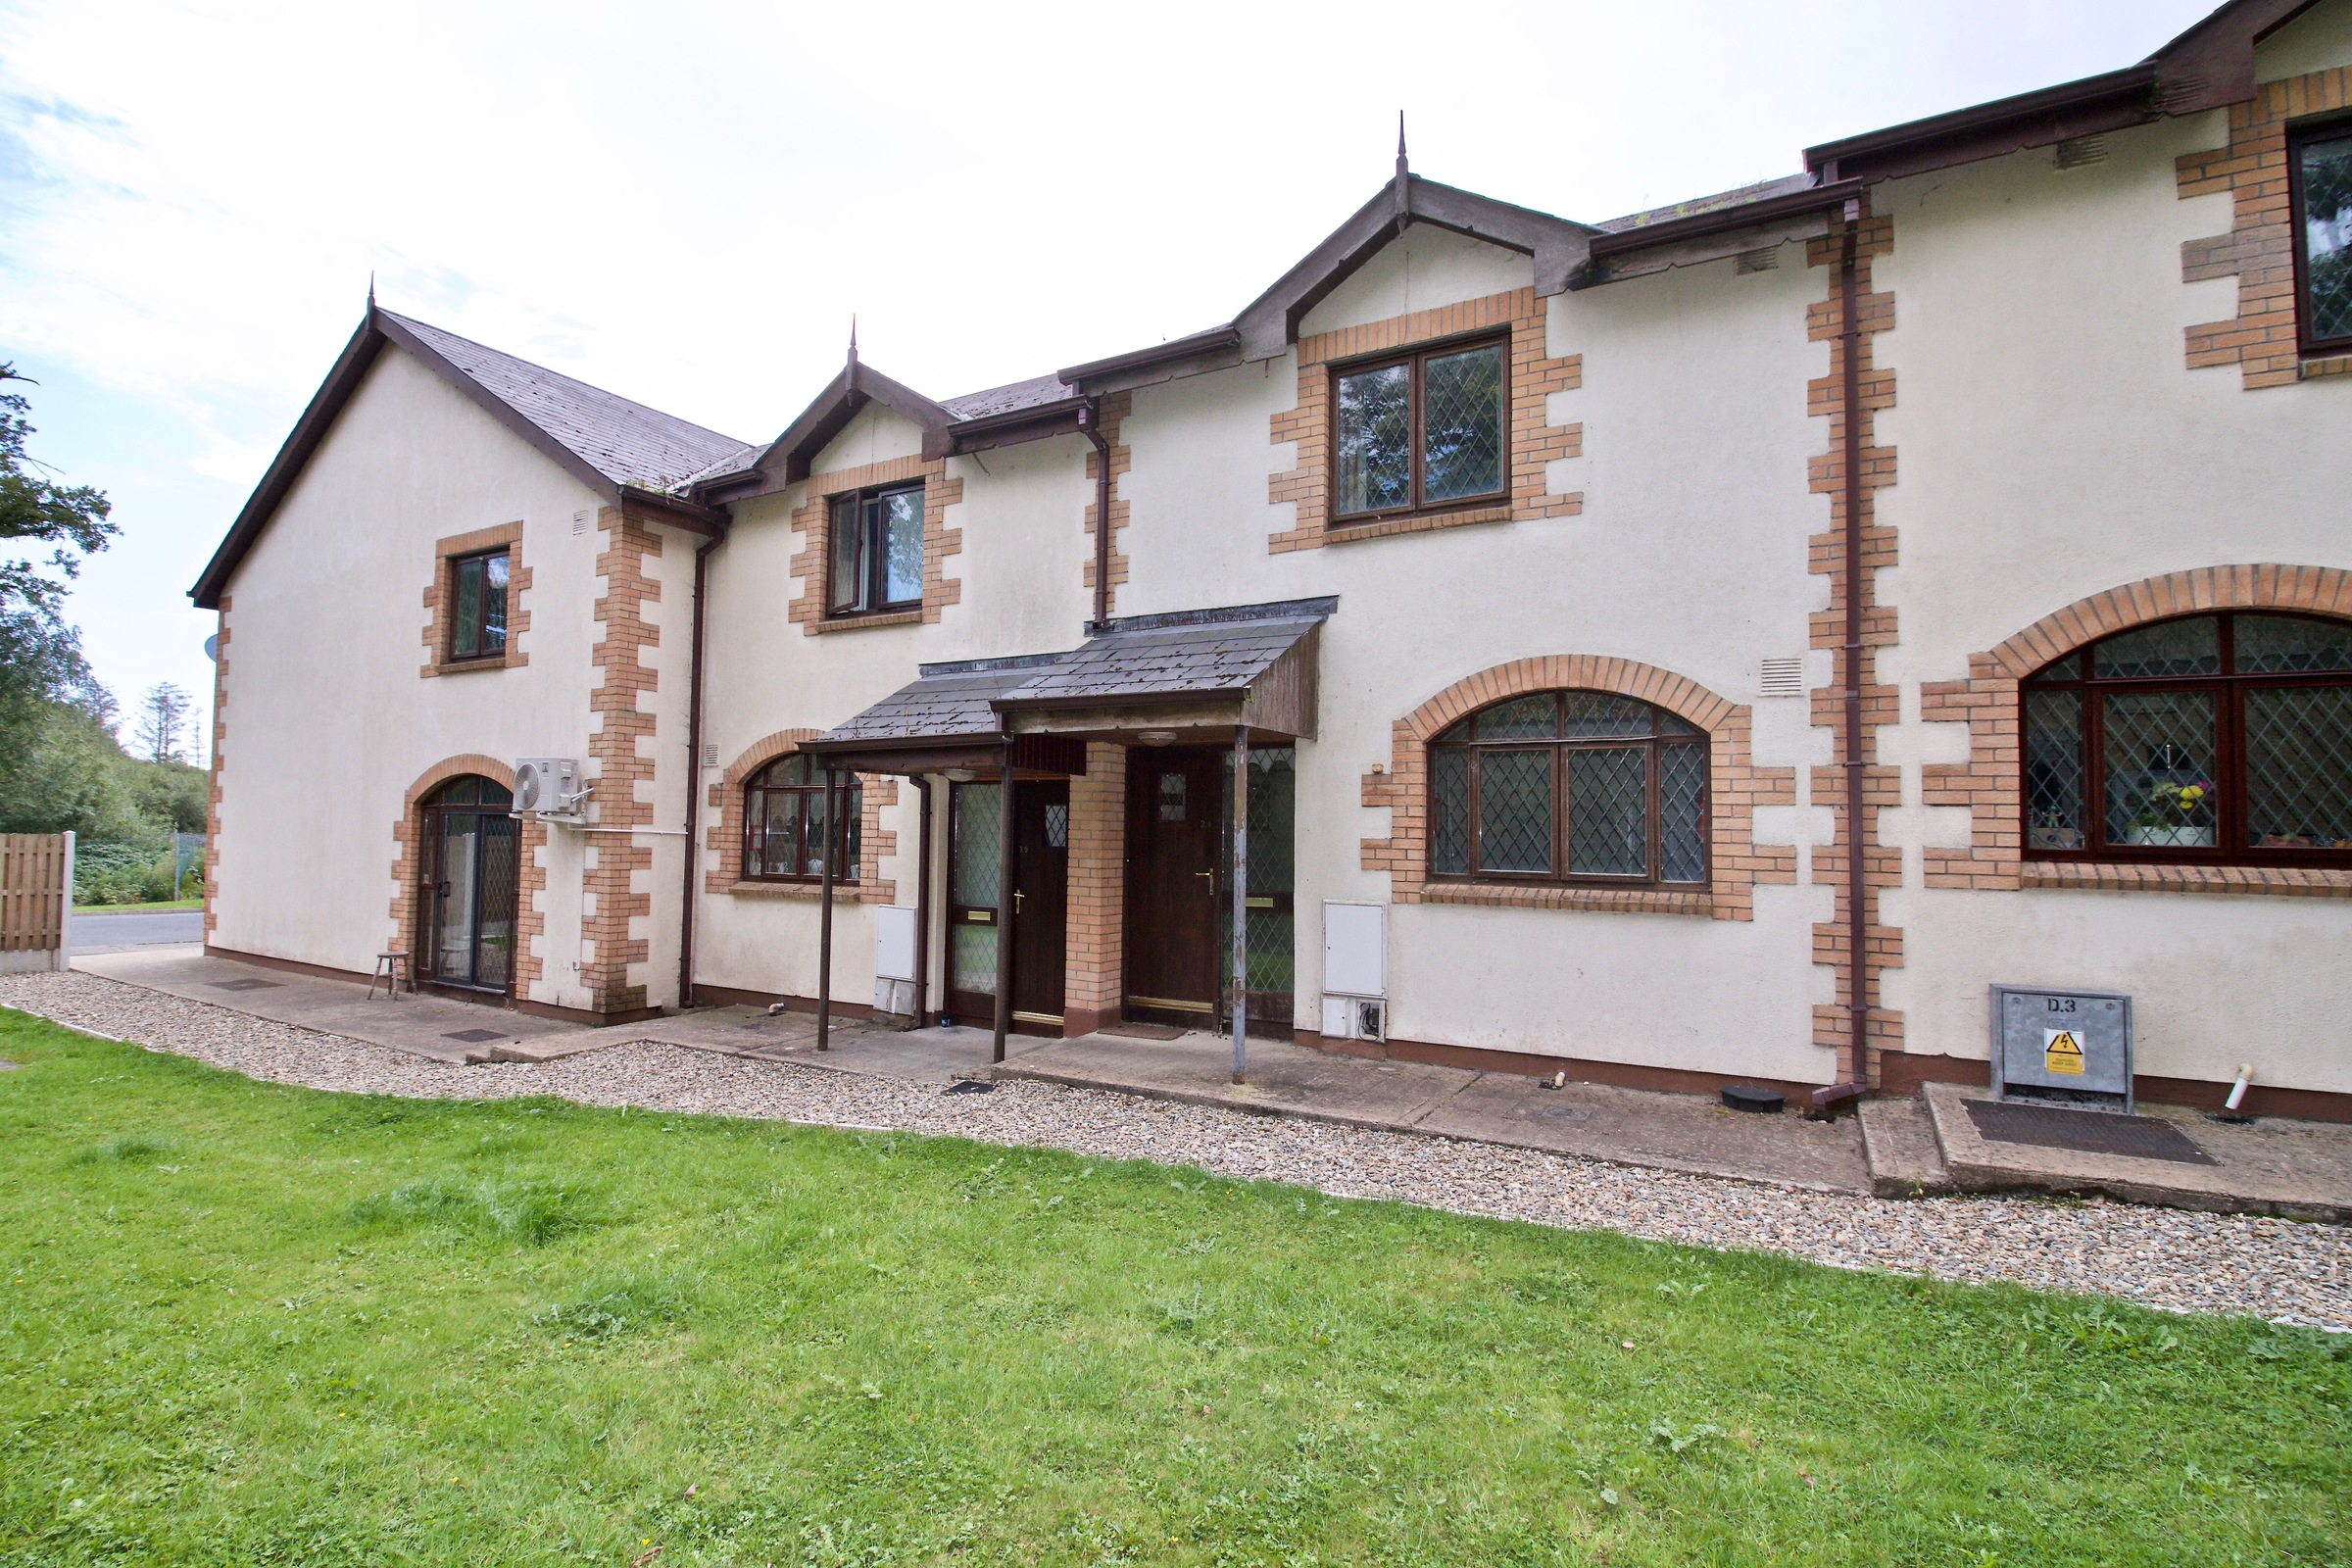 24 The Coach Houses, Forest Park, Gorey, Co. Wexford